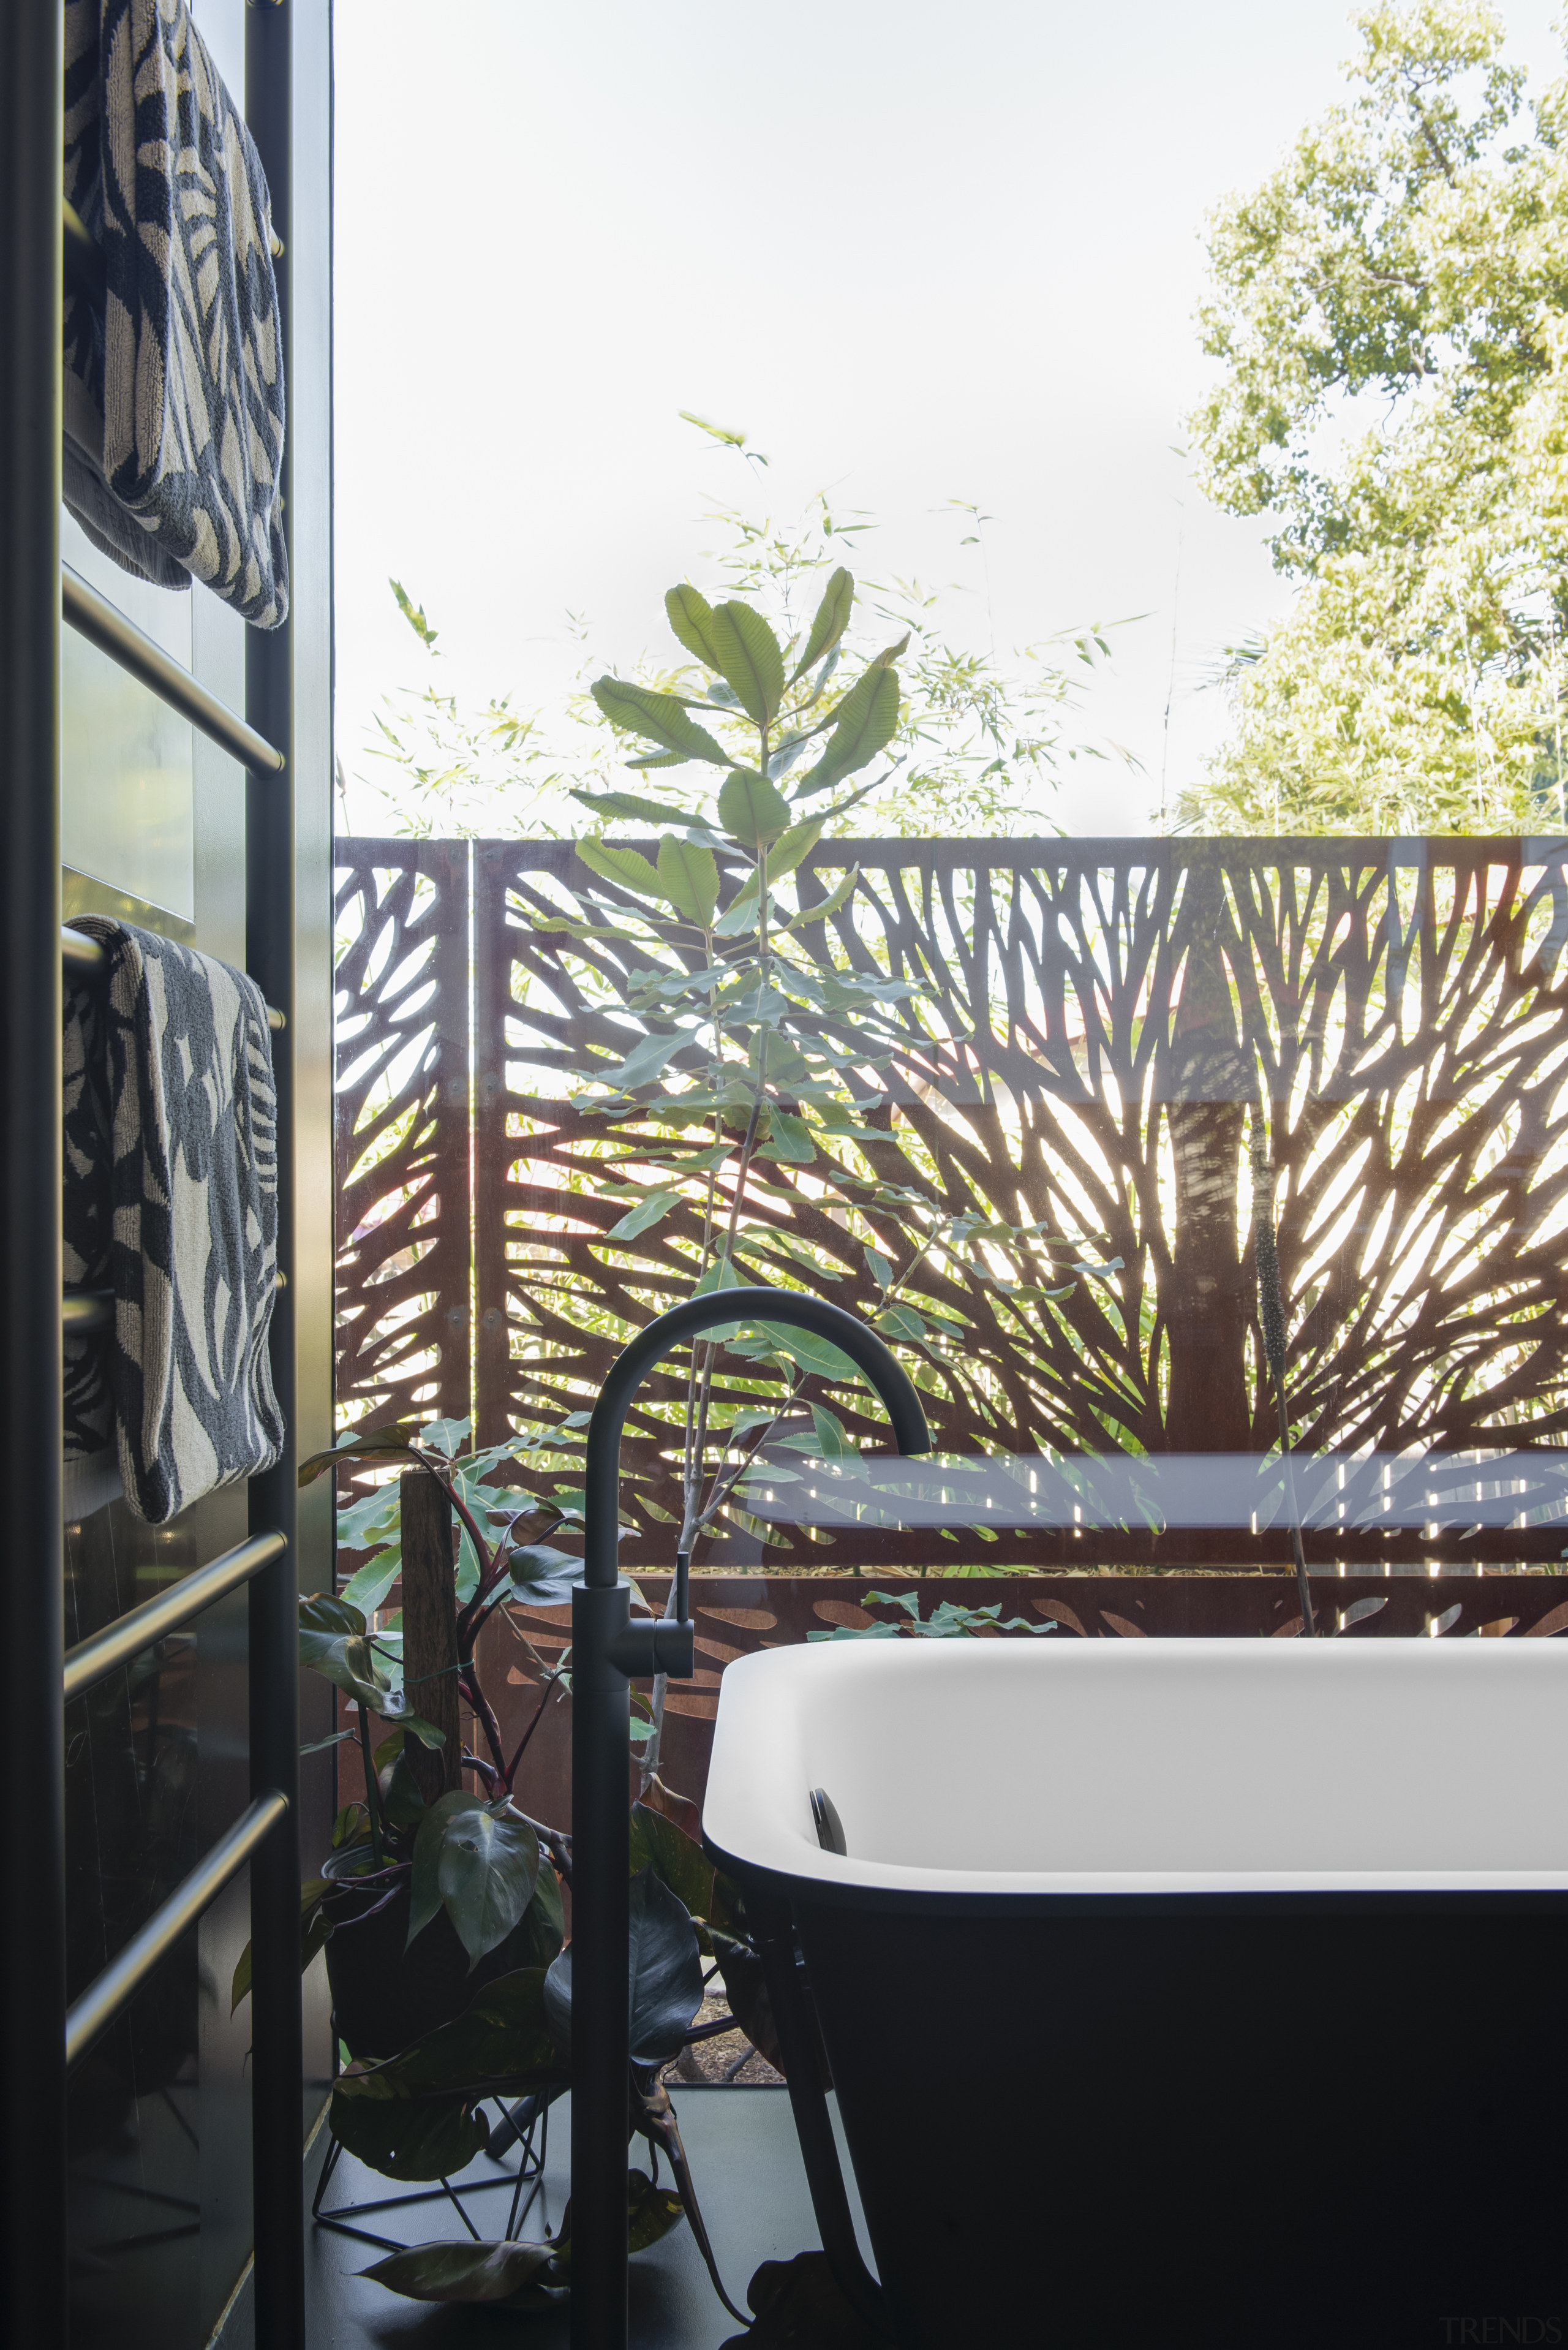 The black and white Morphing bath tub by architecture, bathroom, house planting, iwhite, black, freestanding bath, tap, Minosa, Darren Genner